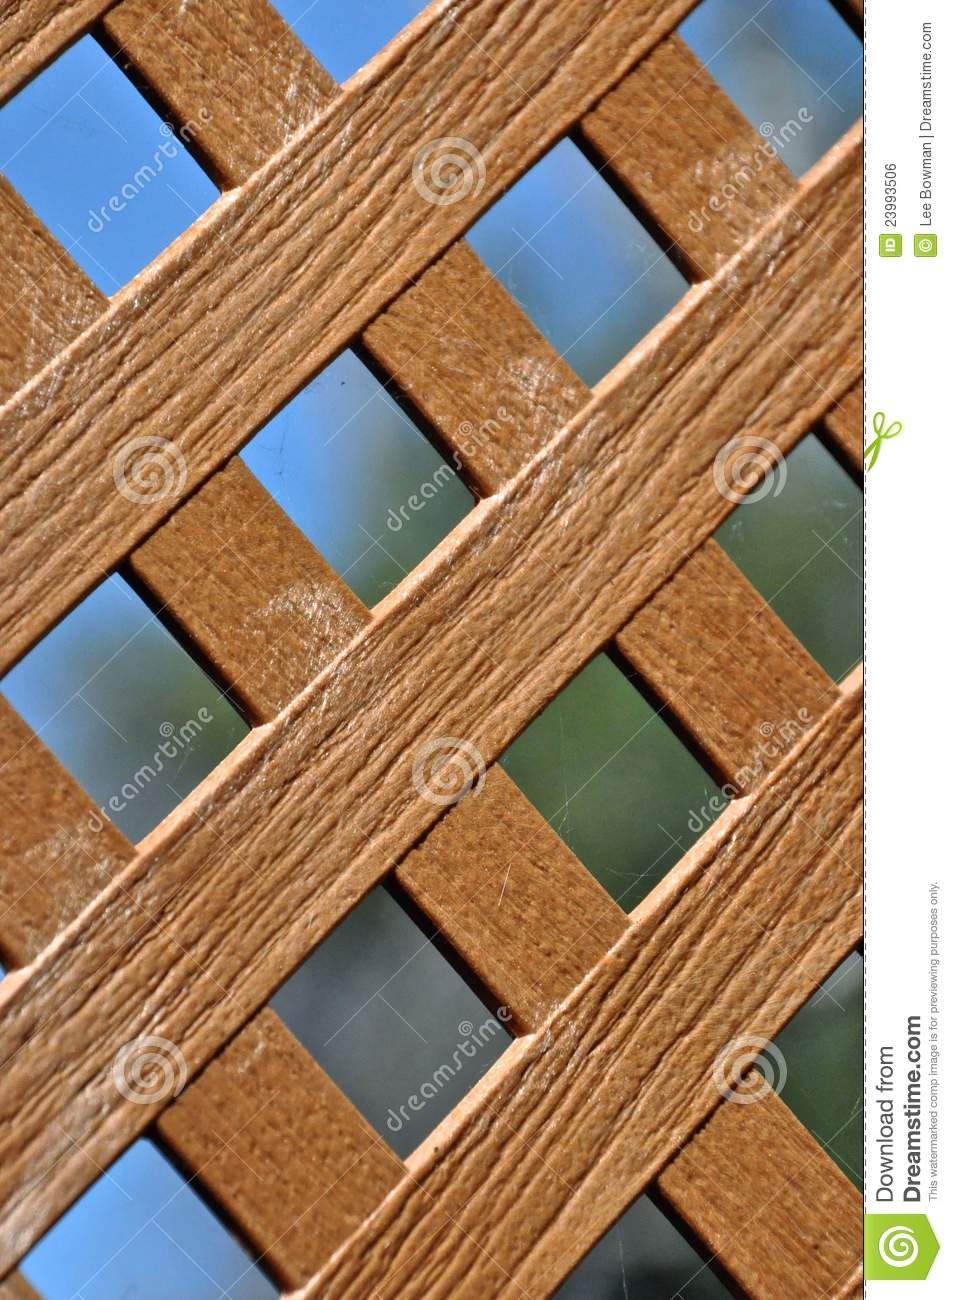 Crosshatch Stock Photo Image Of Wood Wall Fence Plank